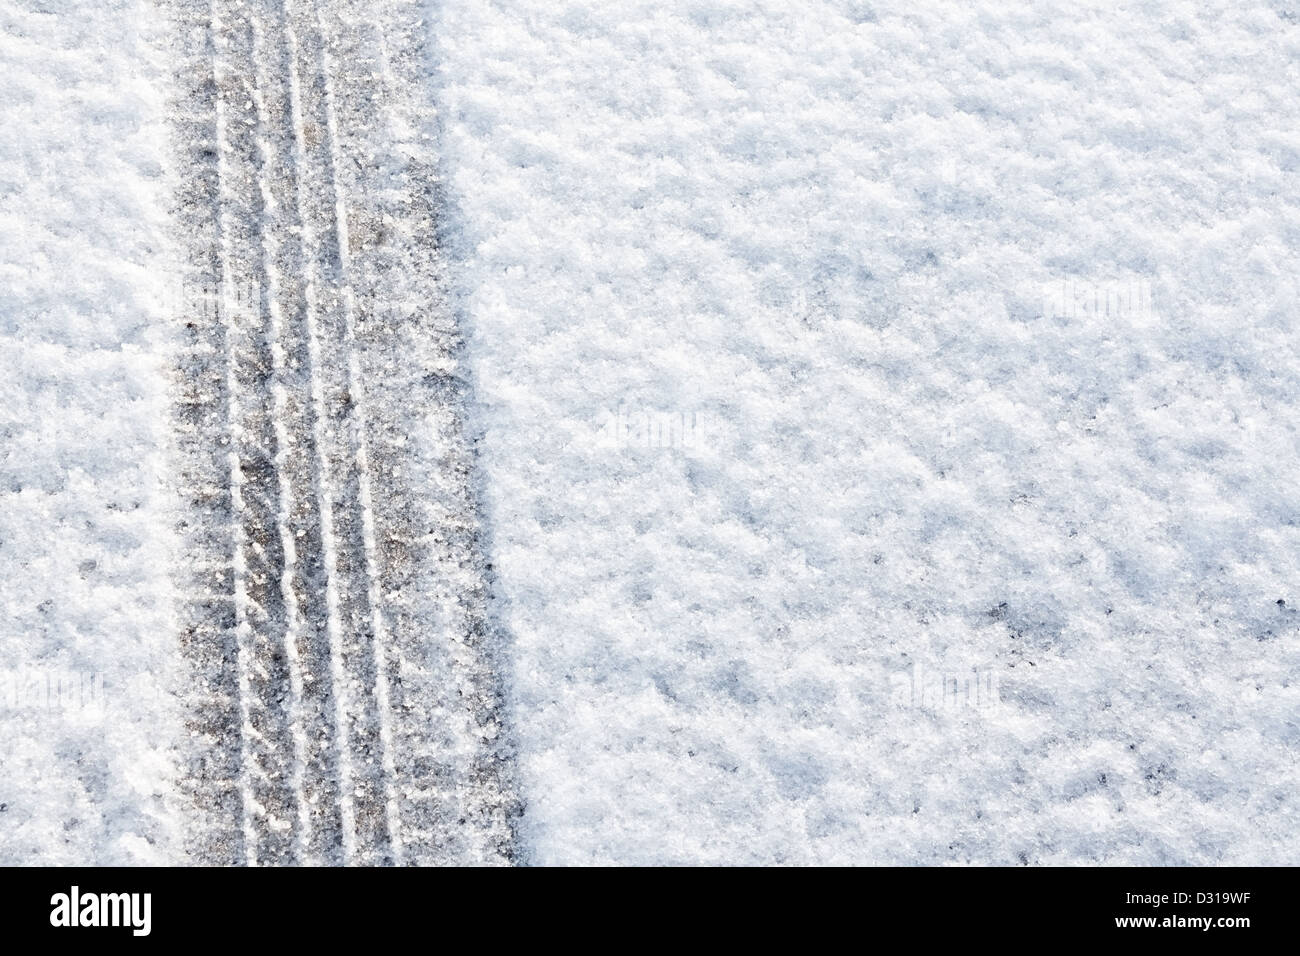 tyre tracks imprinted into fresh snow a great background for rallies or four wheel drive cars - Stock Image